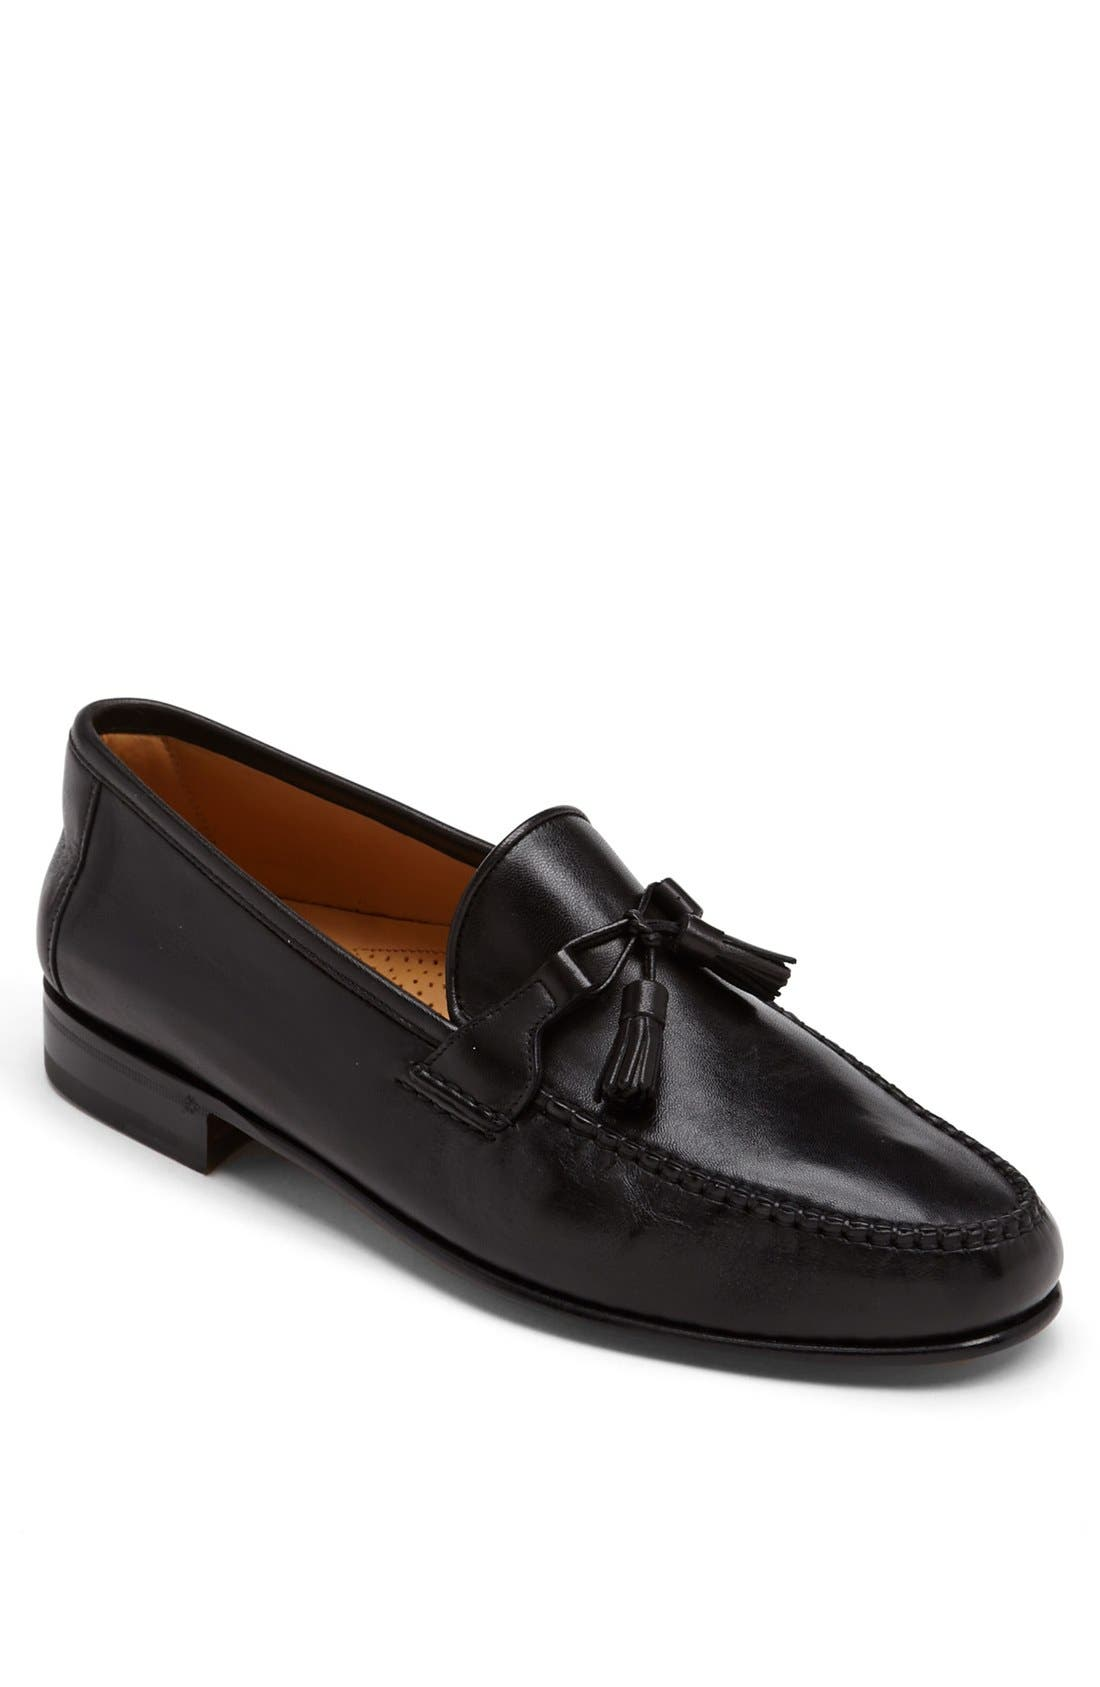 'Urbino' Tassel Loafer,                         Main,                         color, Black